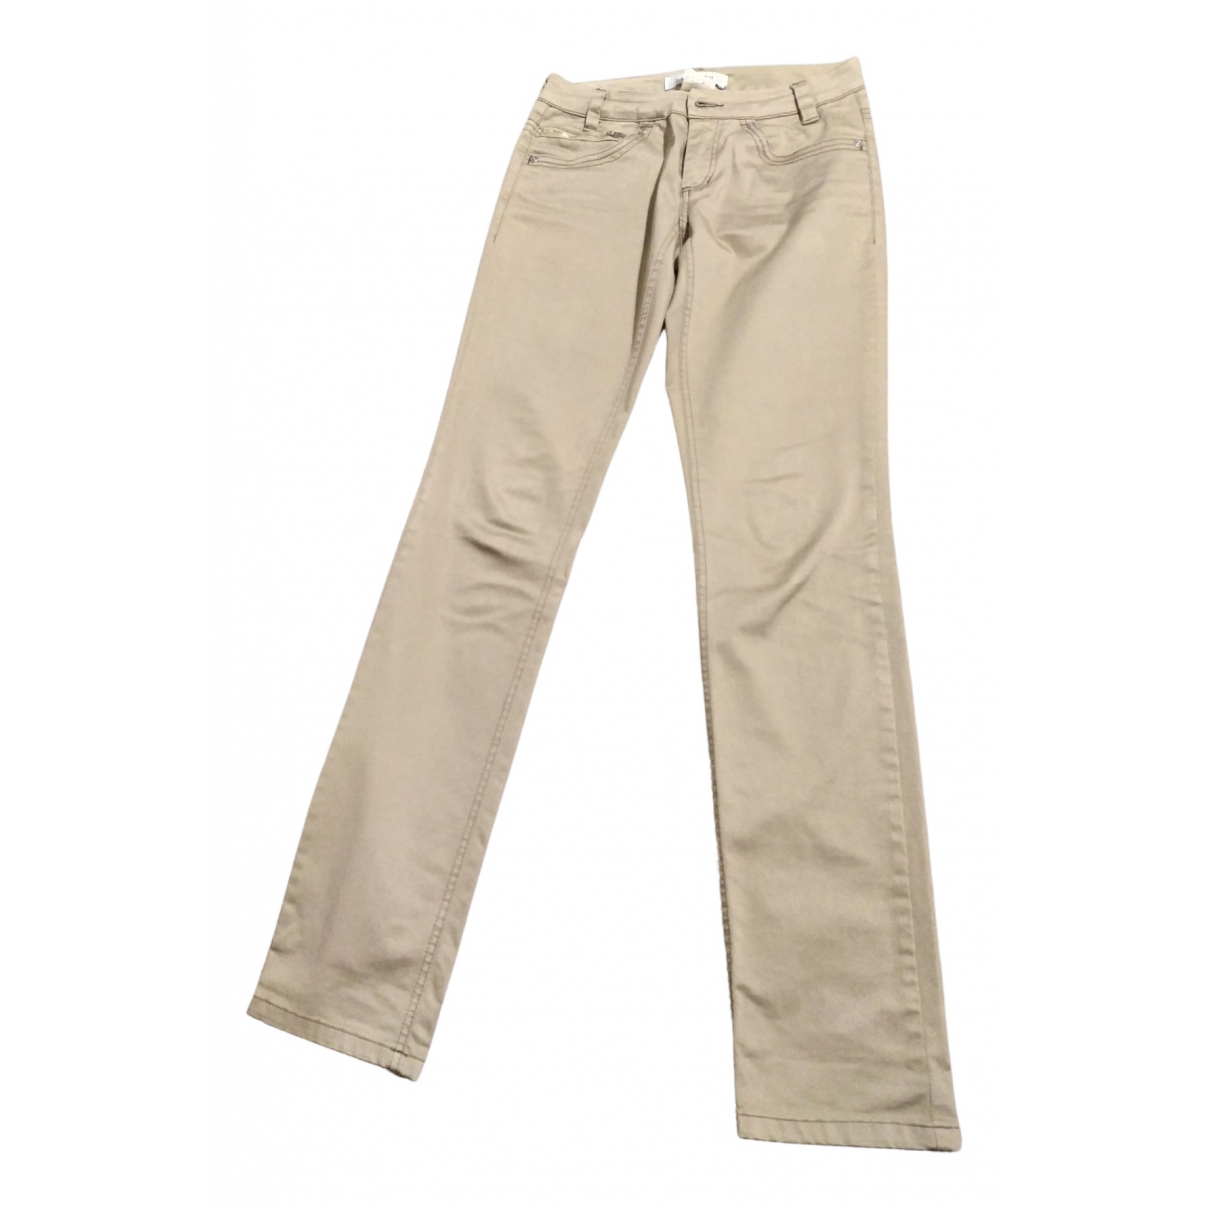 Intrend \N Beige Cotton Trousers for Women 36 FR